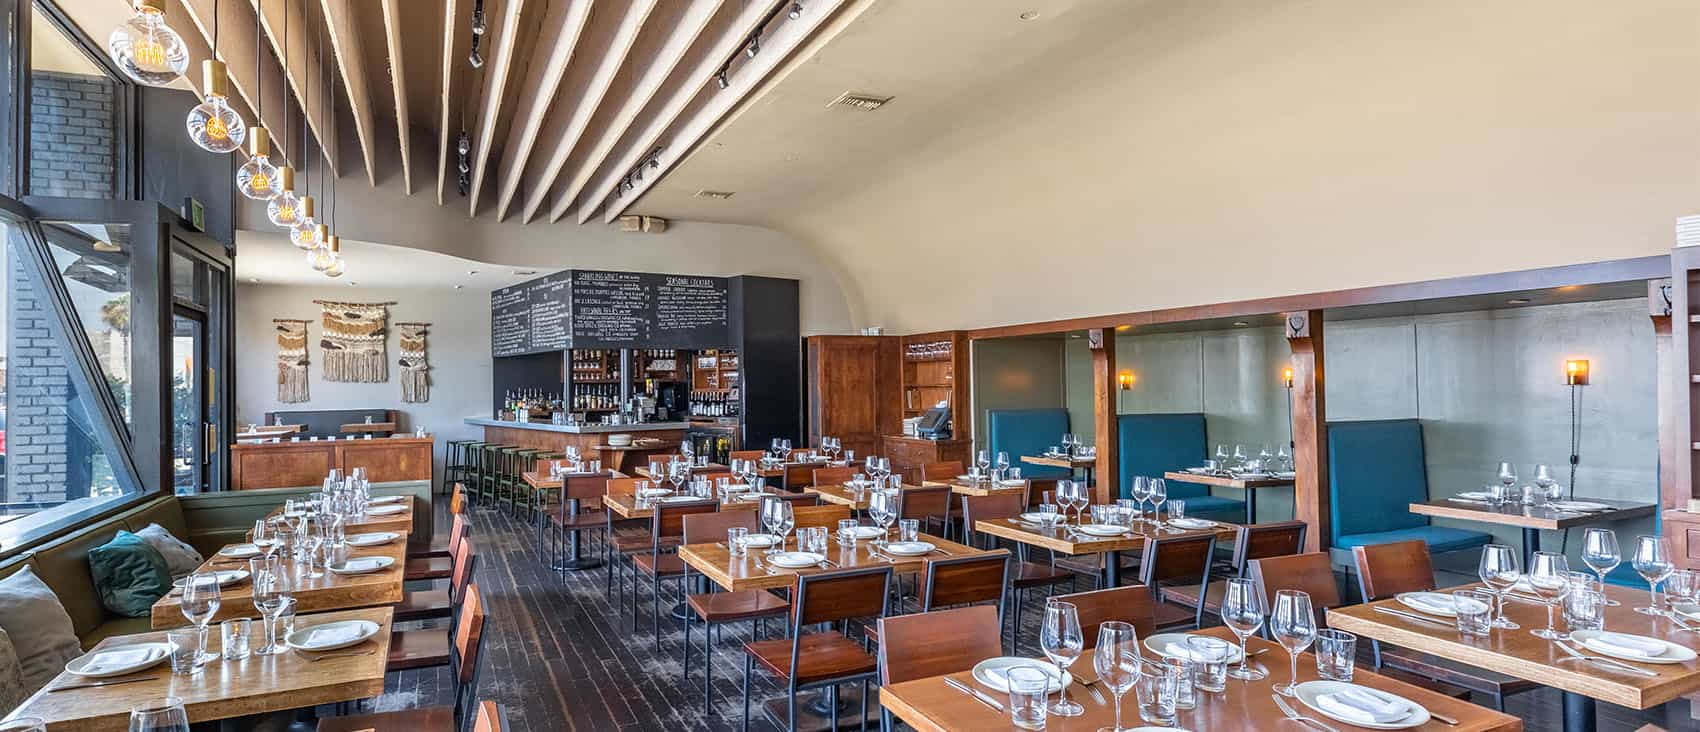 View of Main Dining Room at Rustic Canyon